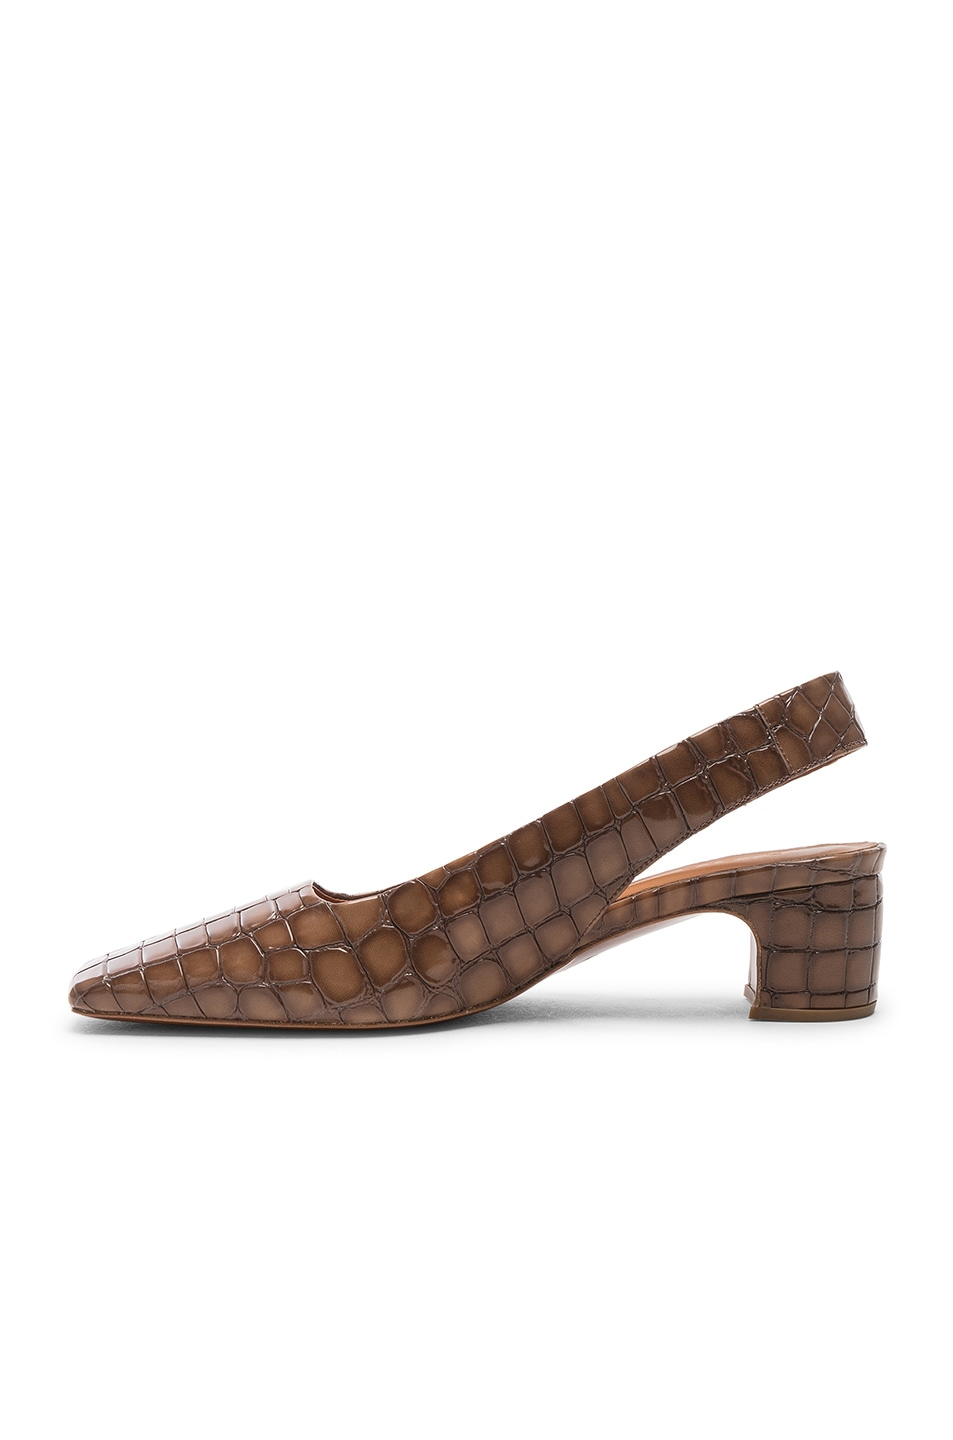 Image 5 of BY FAR Danielle in Brown Croc Embossed Patent